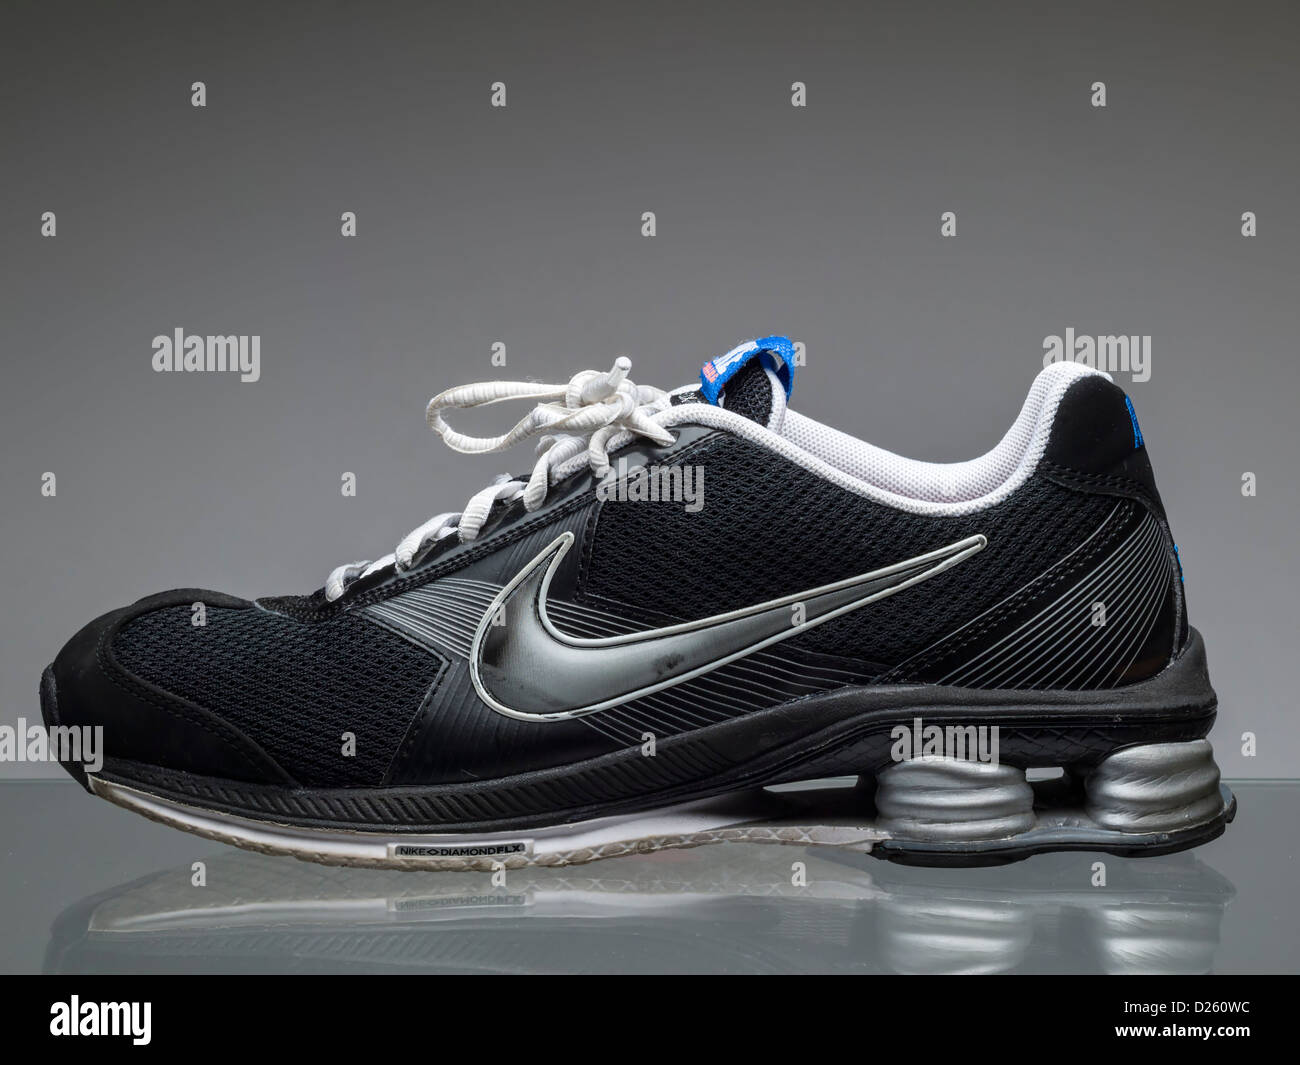 Black Nike running shoe - Stock Image